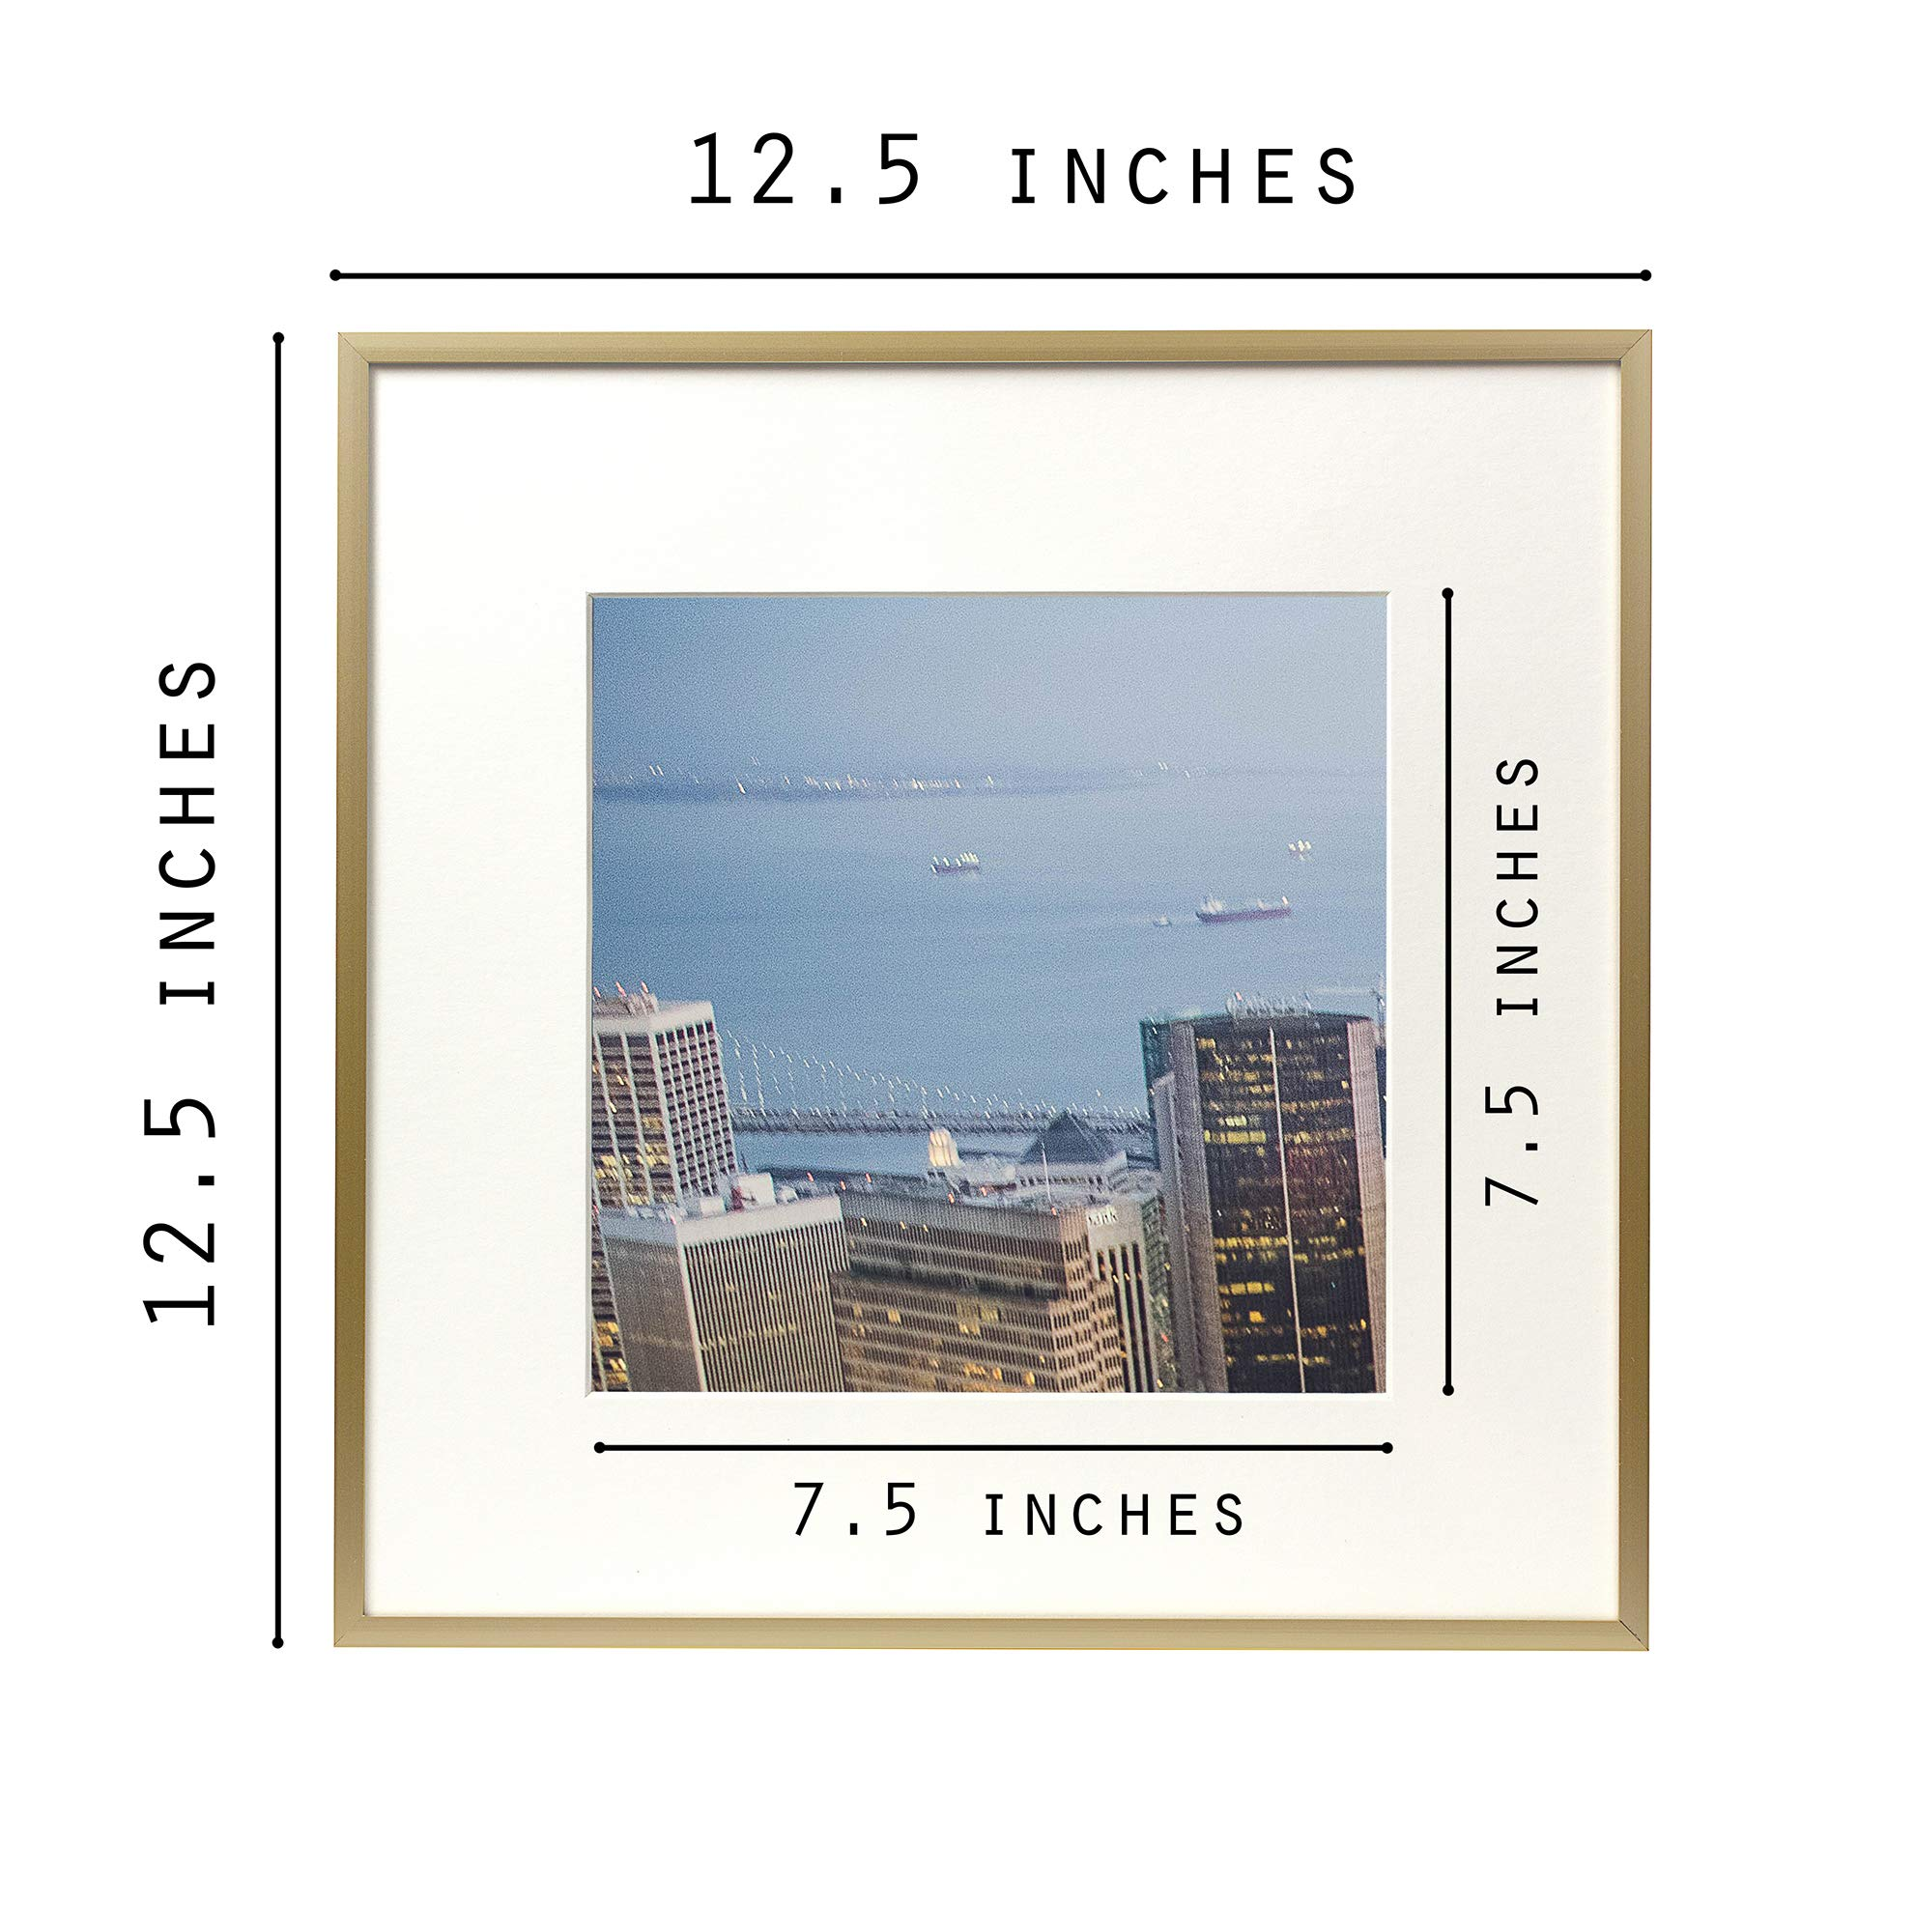 Frametory, Set of 12, 12x12 Gold Aluminum Frame - Includes Ivory Mat for 8x8 Picture - Gallery Wall Display - Sawtooth Hanger, Swivel Tabs - Collage Set for Weddings, Decorations, Art by Frametory (Image #4)